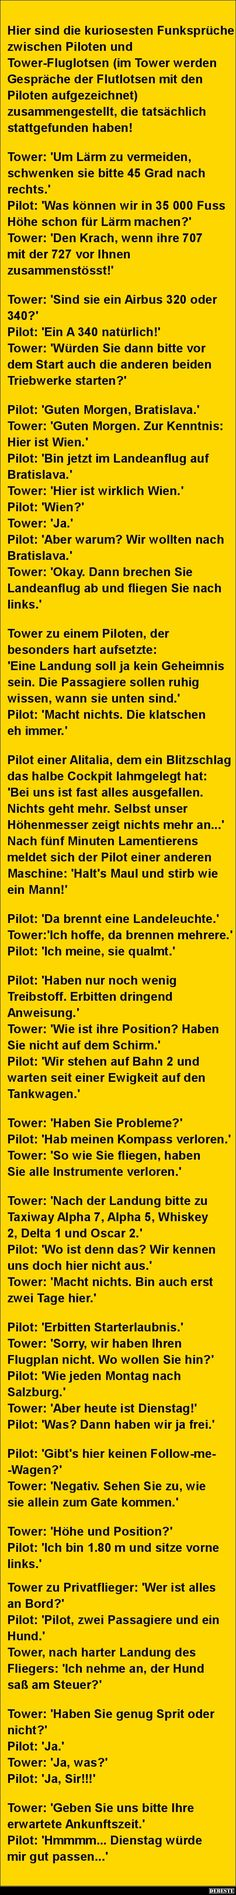 Here are the most curious radio messages between pilots Hier sind die kuriosesten Funksprüche zwischen Piloten. Here are the most curious radio messages between pilots . Haha, Funny Jokes, Hilarious, Avengers Memes, Pokemon, Just Smile, Funny Cute, Laugh Out Loud, I Laughed